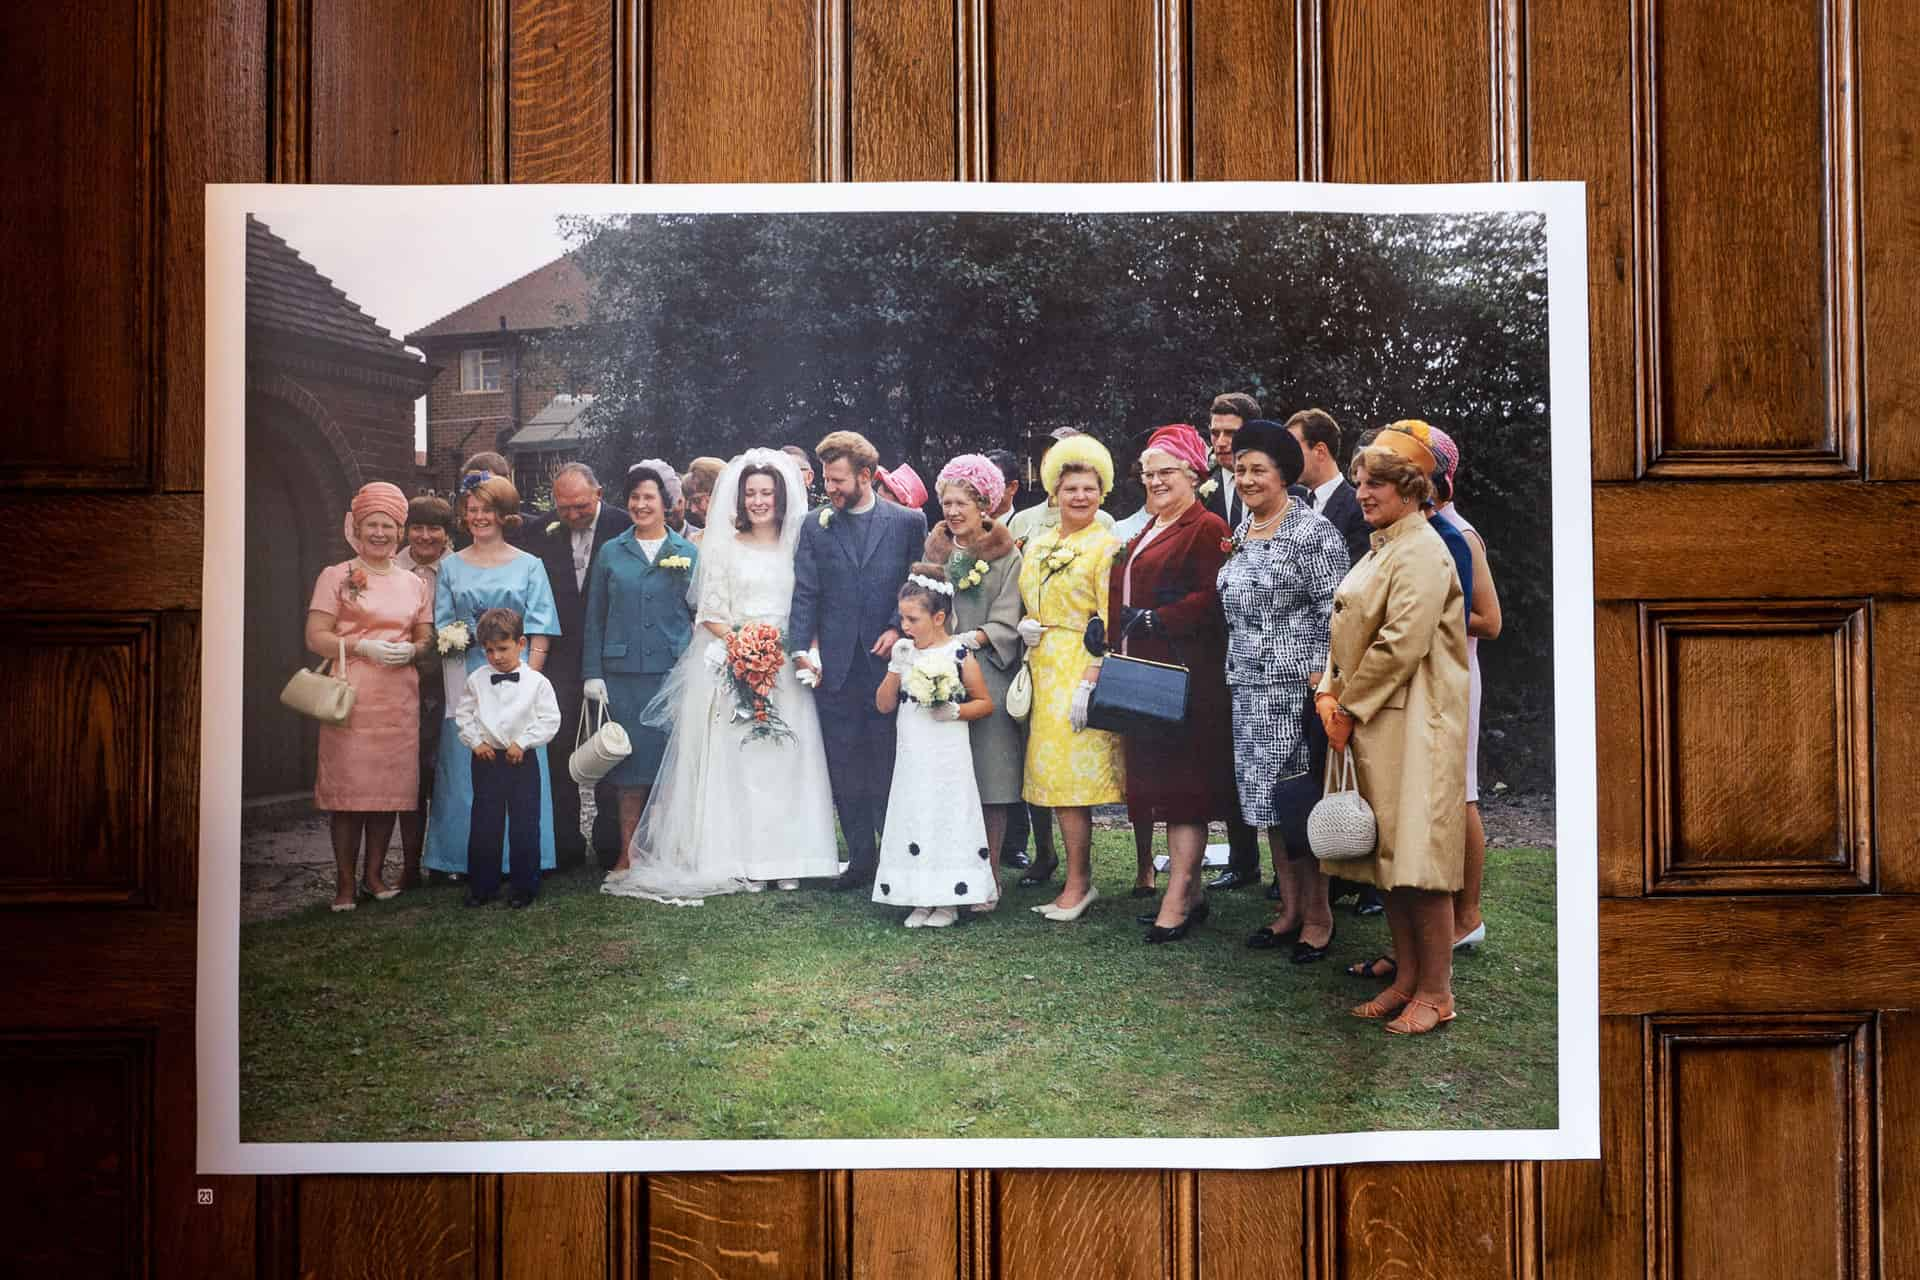 Ron Moss: The Wedding of Margaret Gwilliams and Jake Watson at Laurel Road Methodist church in August 1967.